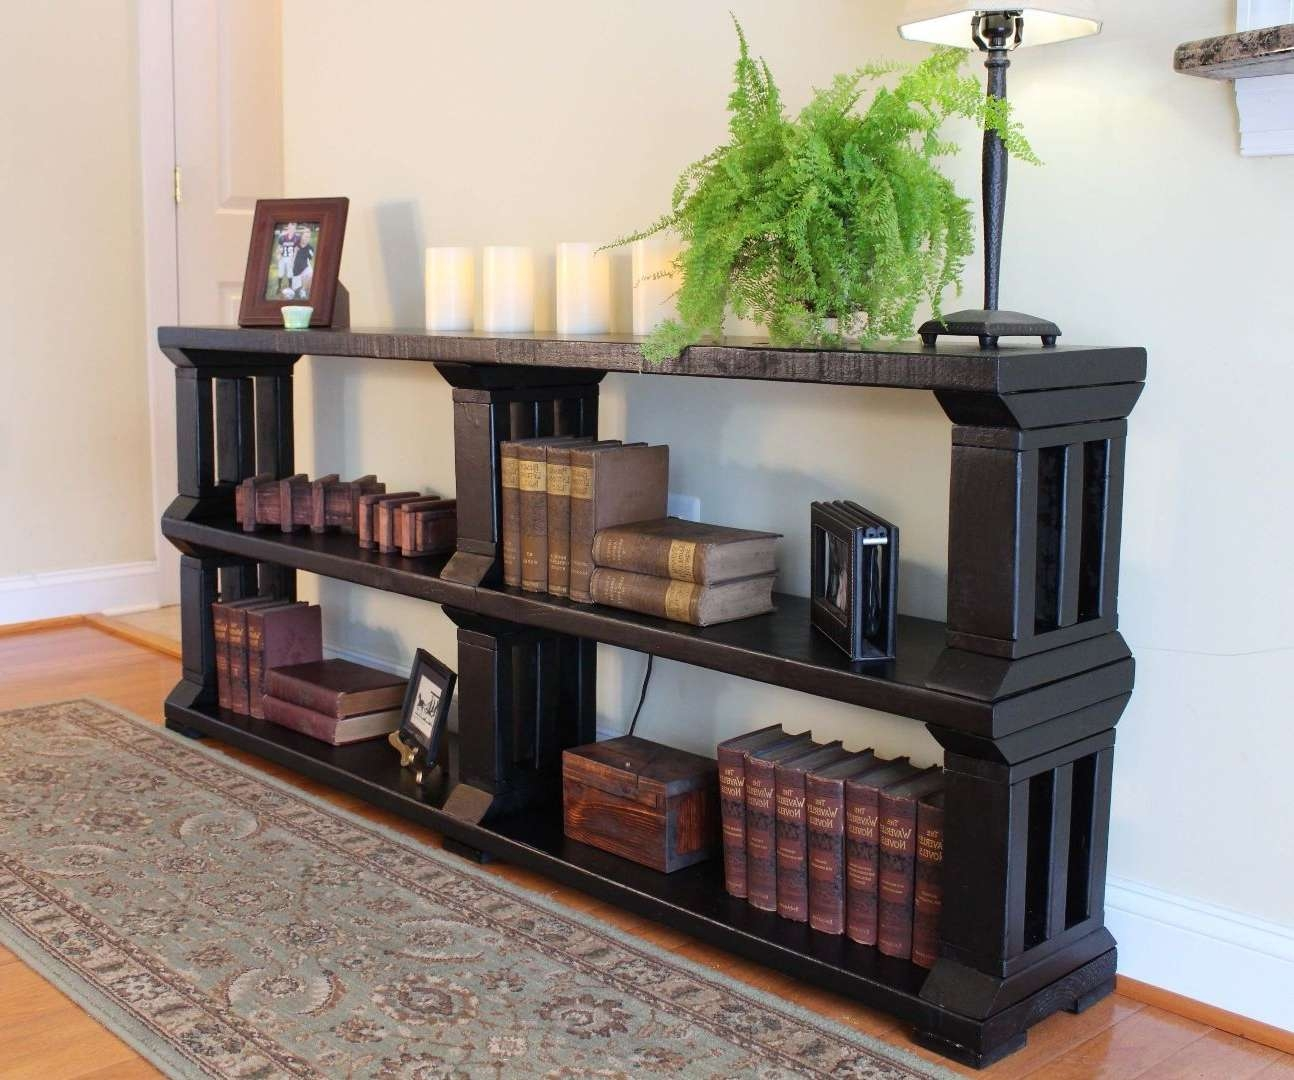 Rustic Book Shelf Or Tv Stand: 13 Steps (With Pictures) Throughout Tv Stands And Bookshelf (View 8 of 15)